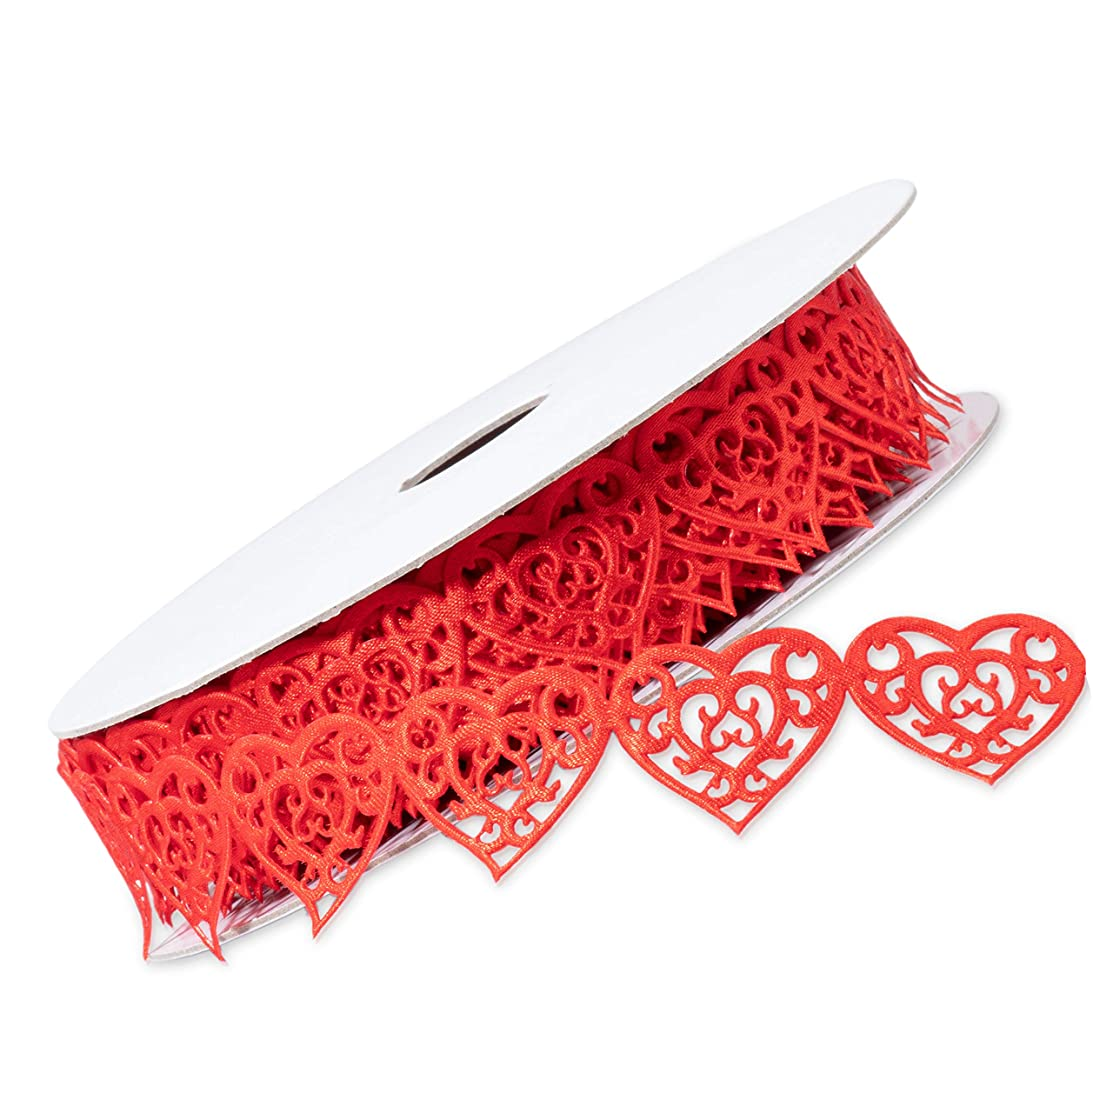 Juvale Decorative Romantic Heart Shaped Lace Red Trim Ribbon for Valentines Day, DIY Crafts, Sewing, 15 Yards x 1 Inch